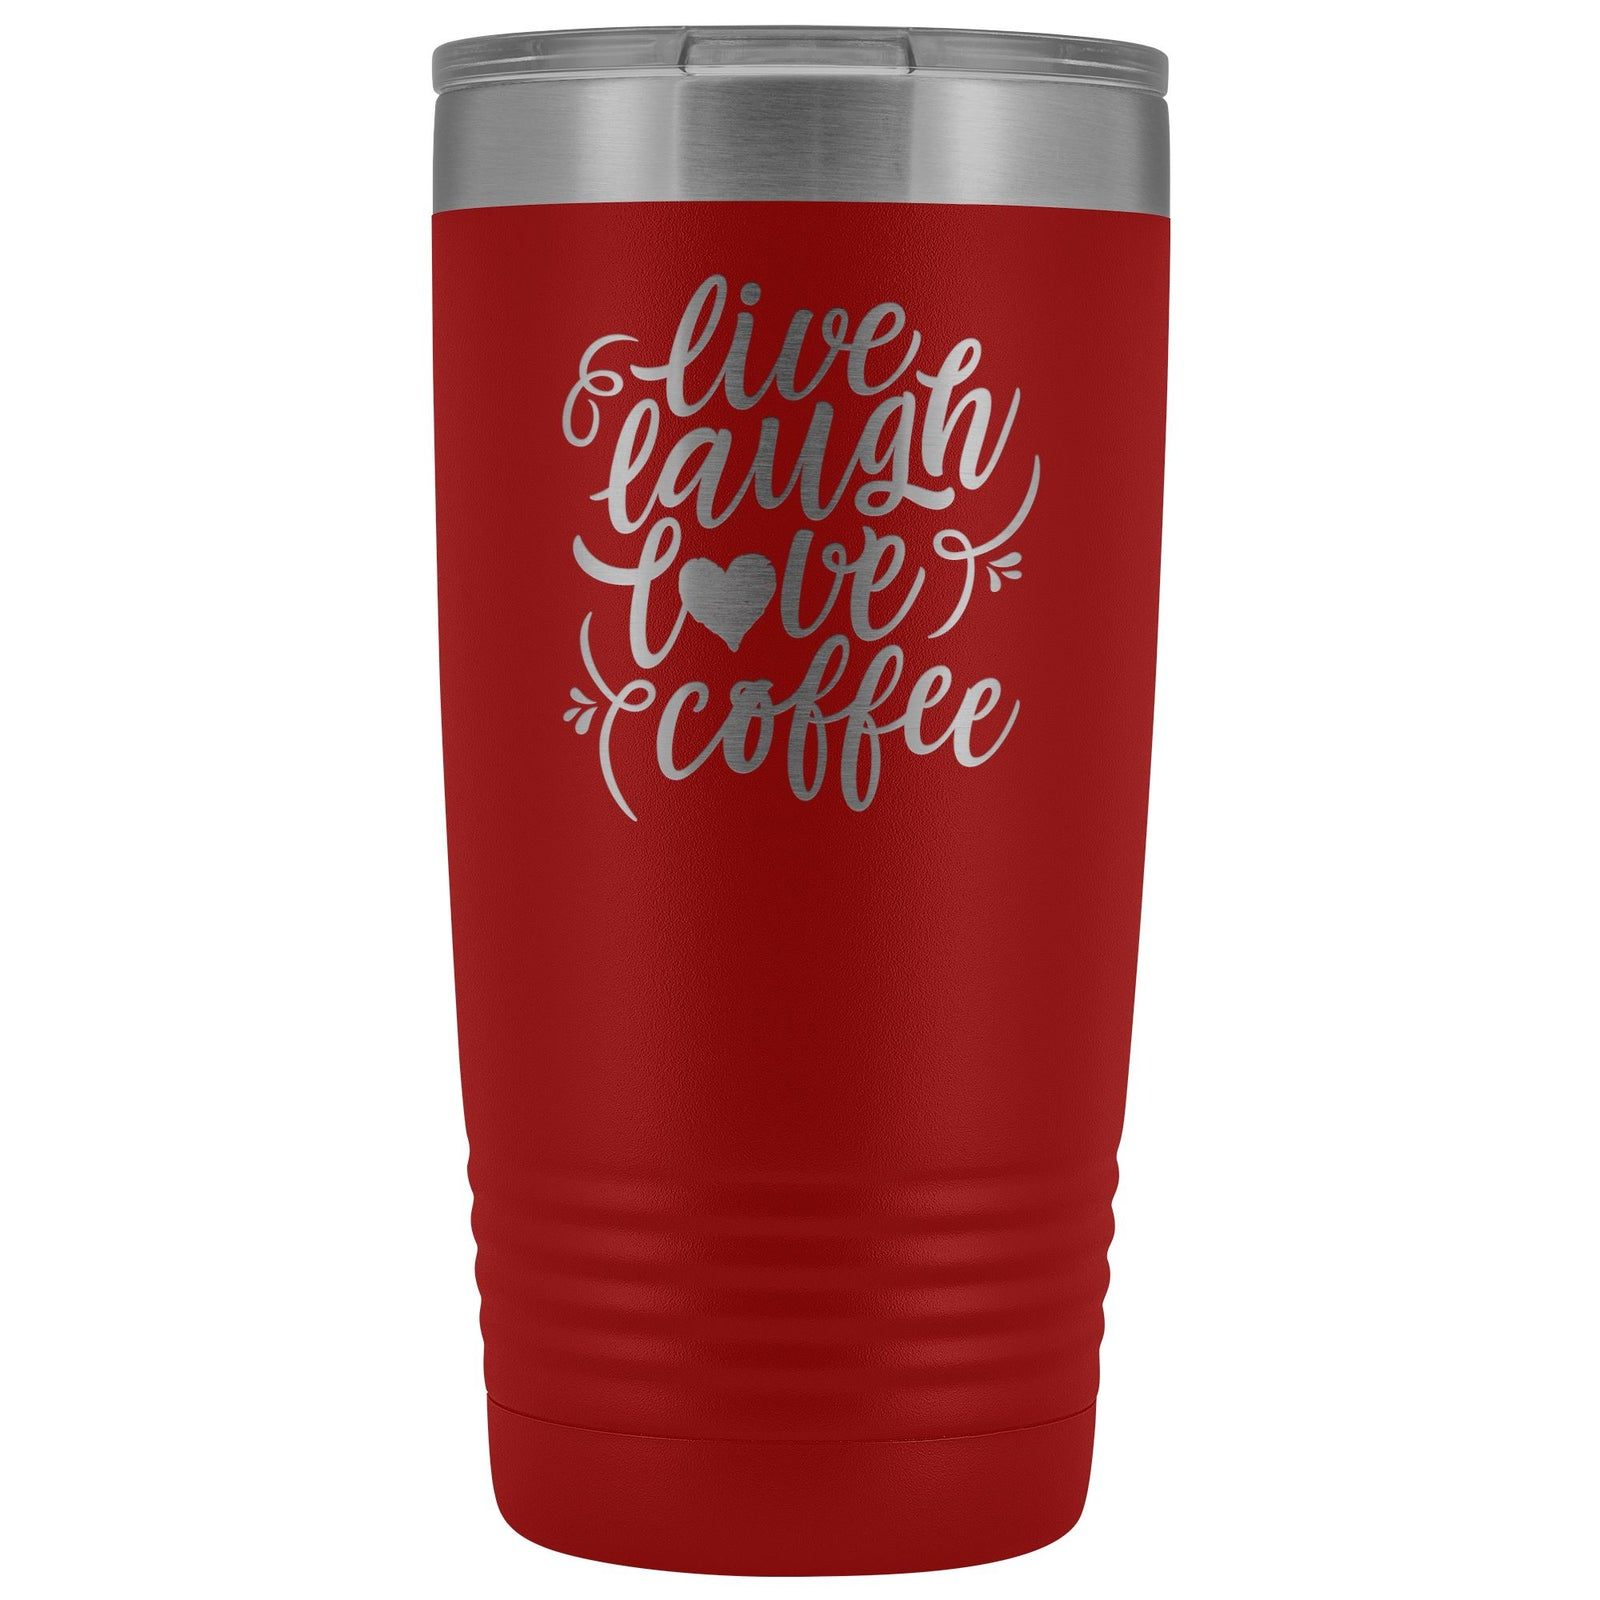 Live, Laugh, Love, Coffee • 15oz Insulated Coffee Tumbler Tumblers teelaunch Red